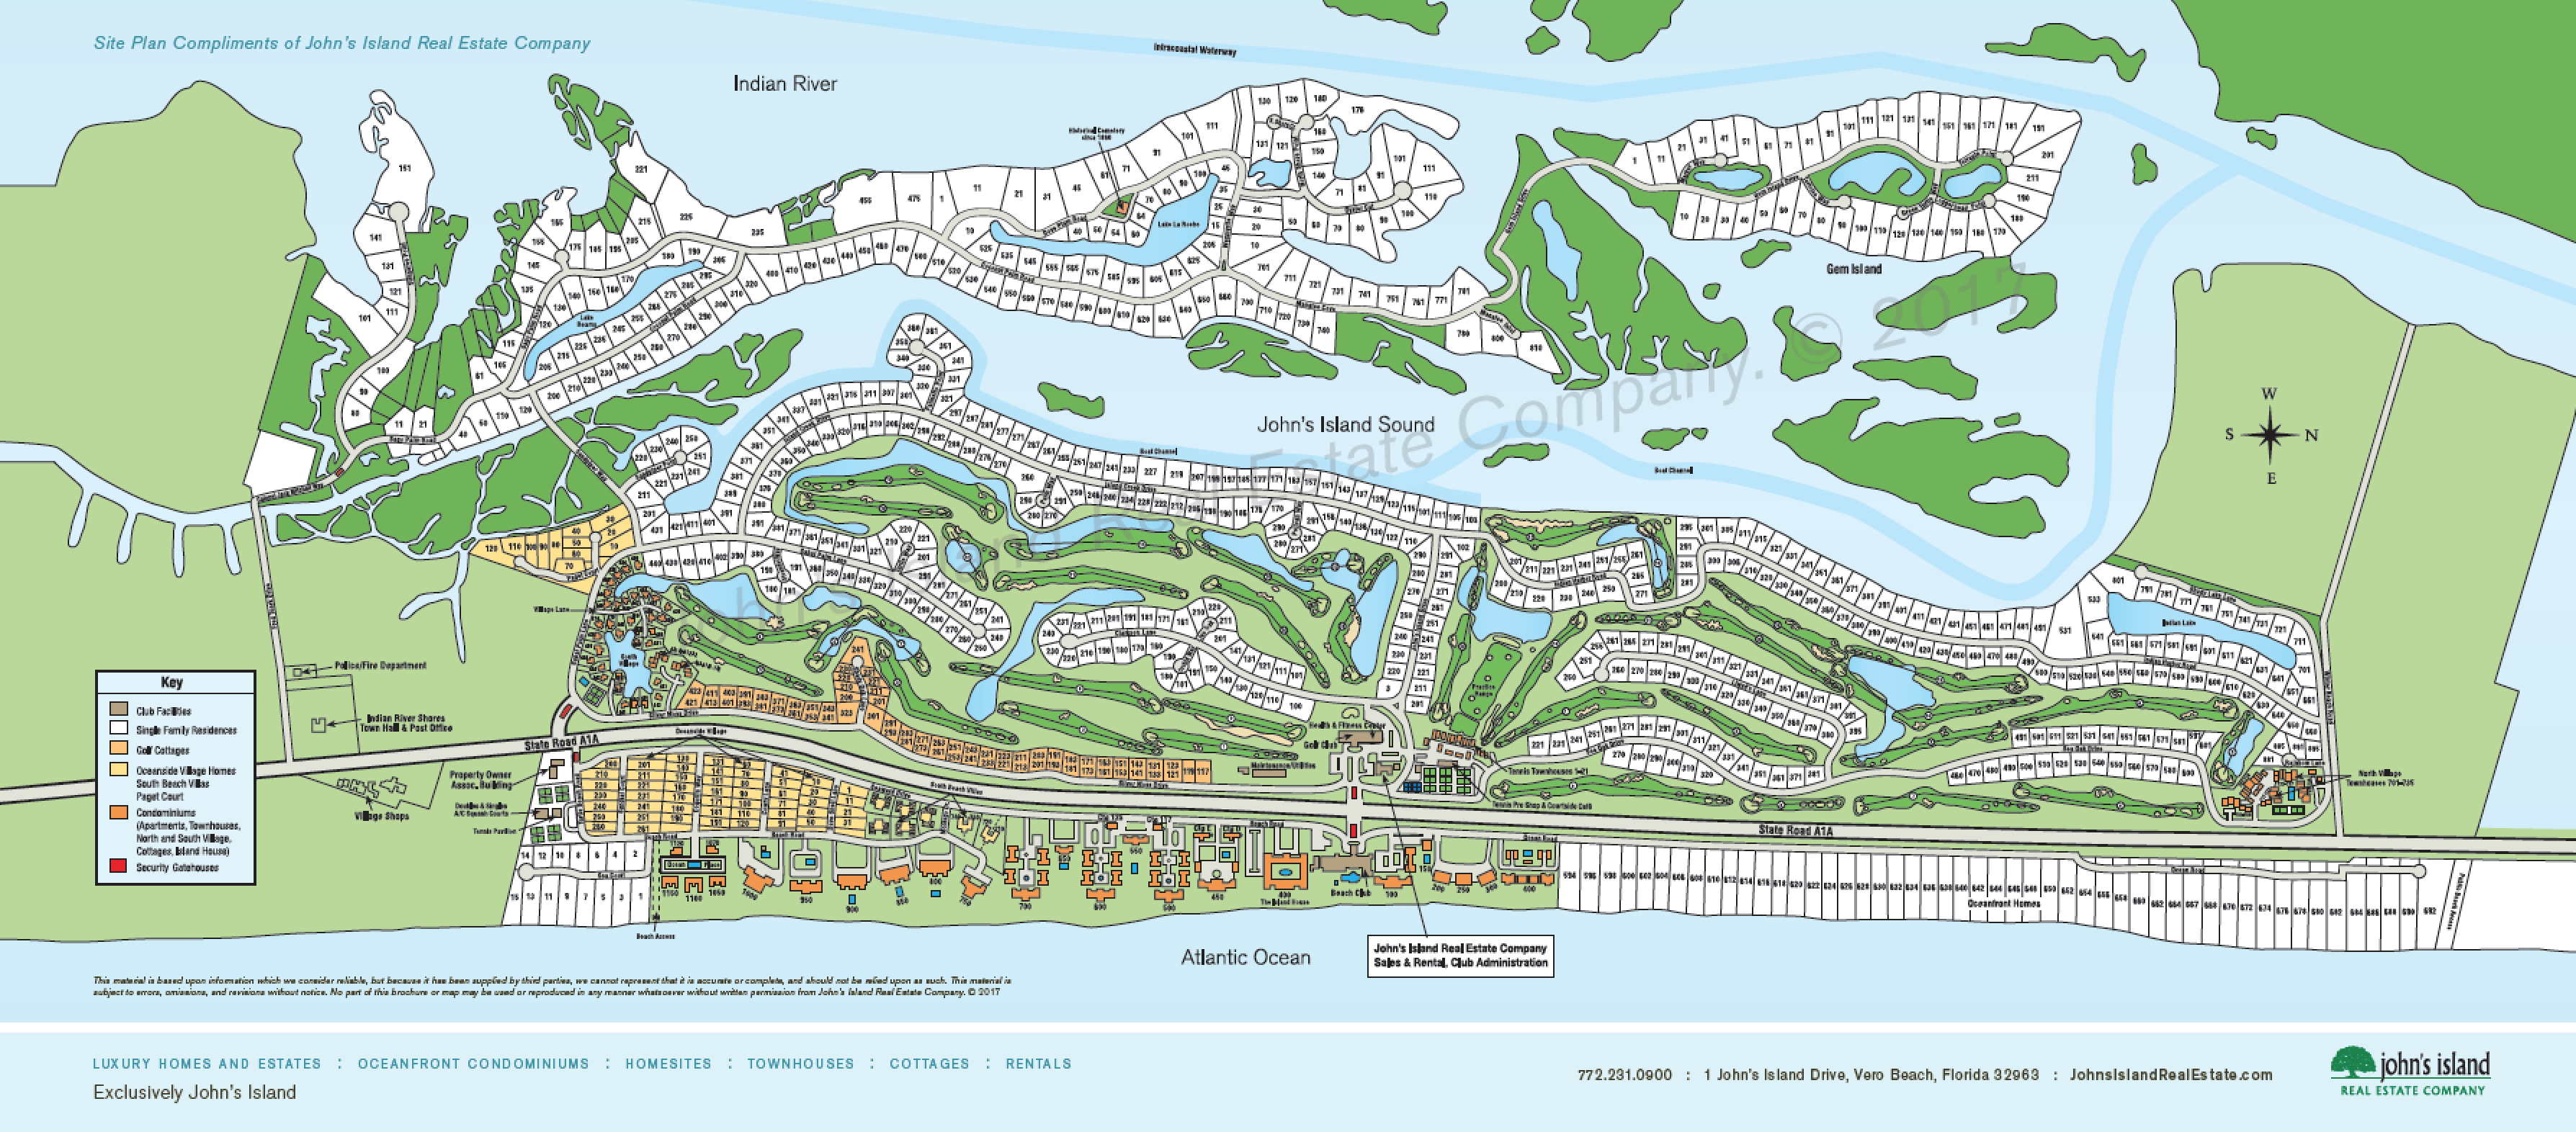 Johns Island Site Plan Johns Island Real Estate Company - Vero beach florida map